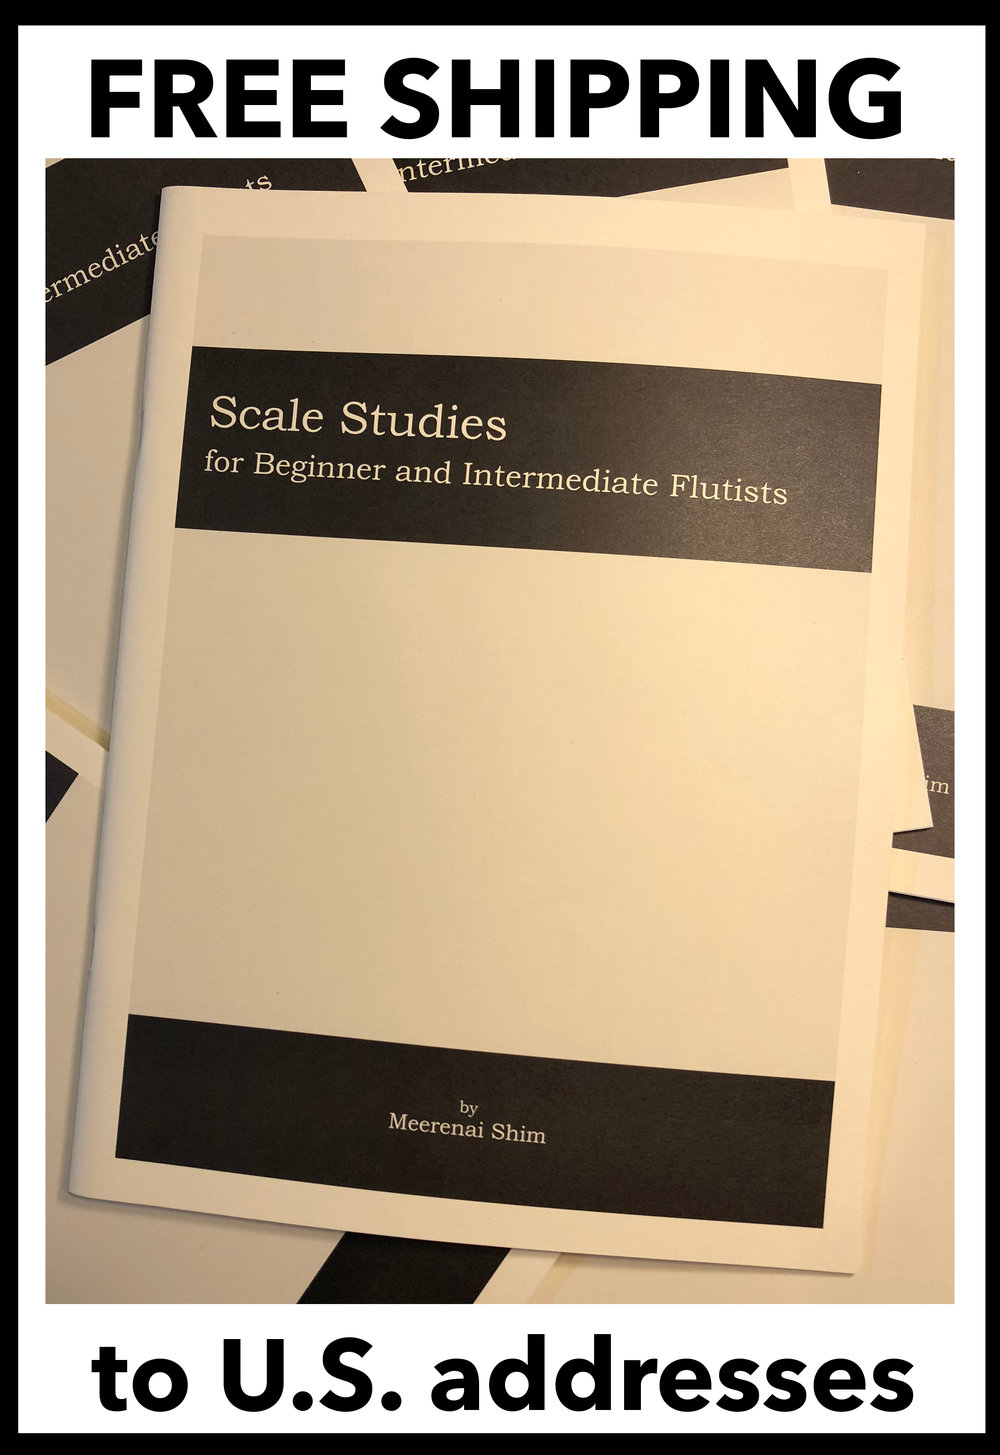 My Scale books ship for free within the USA!